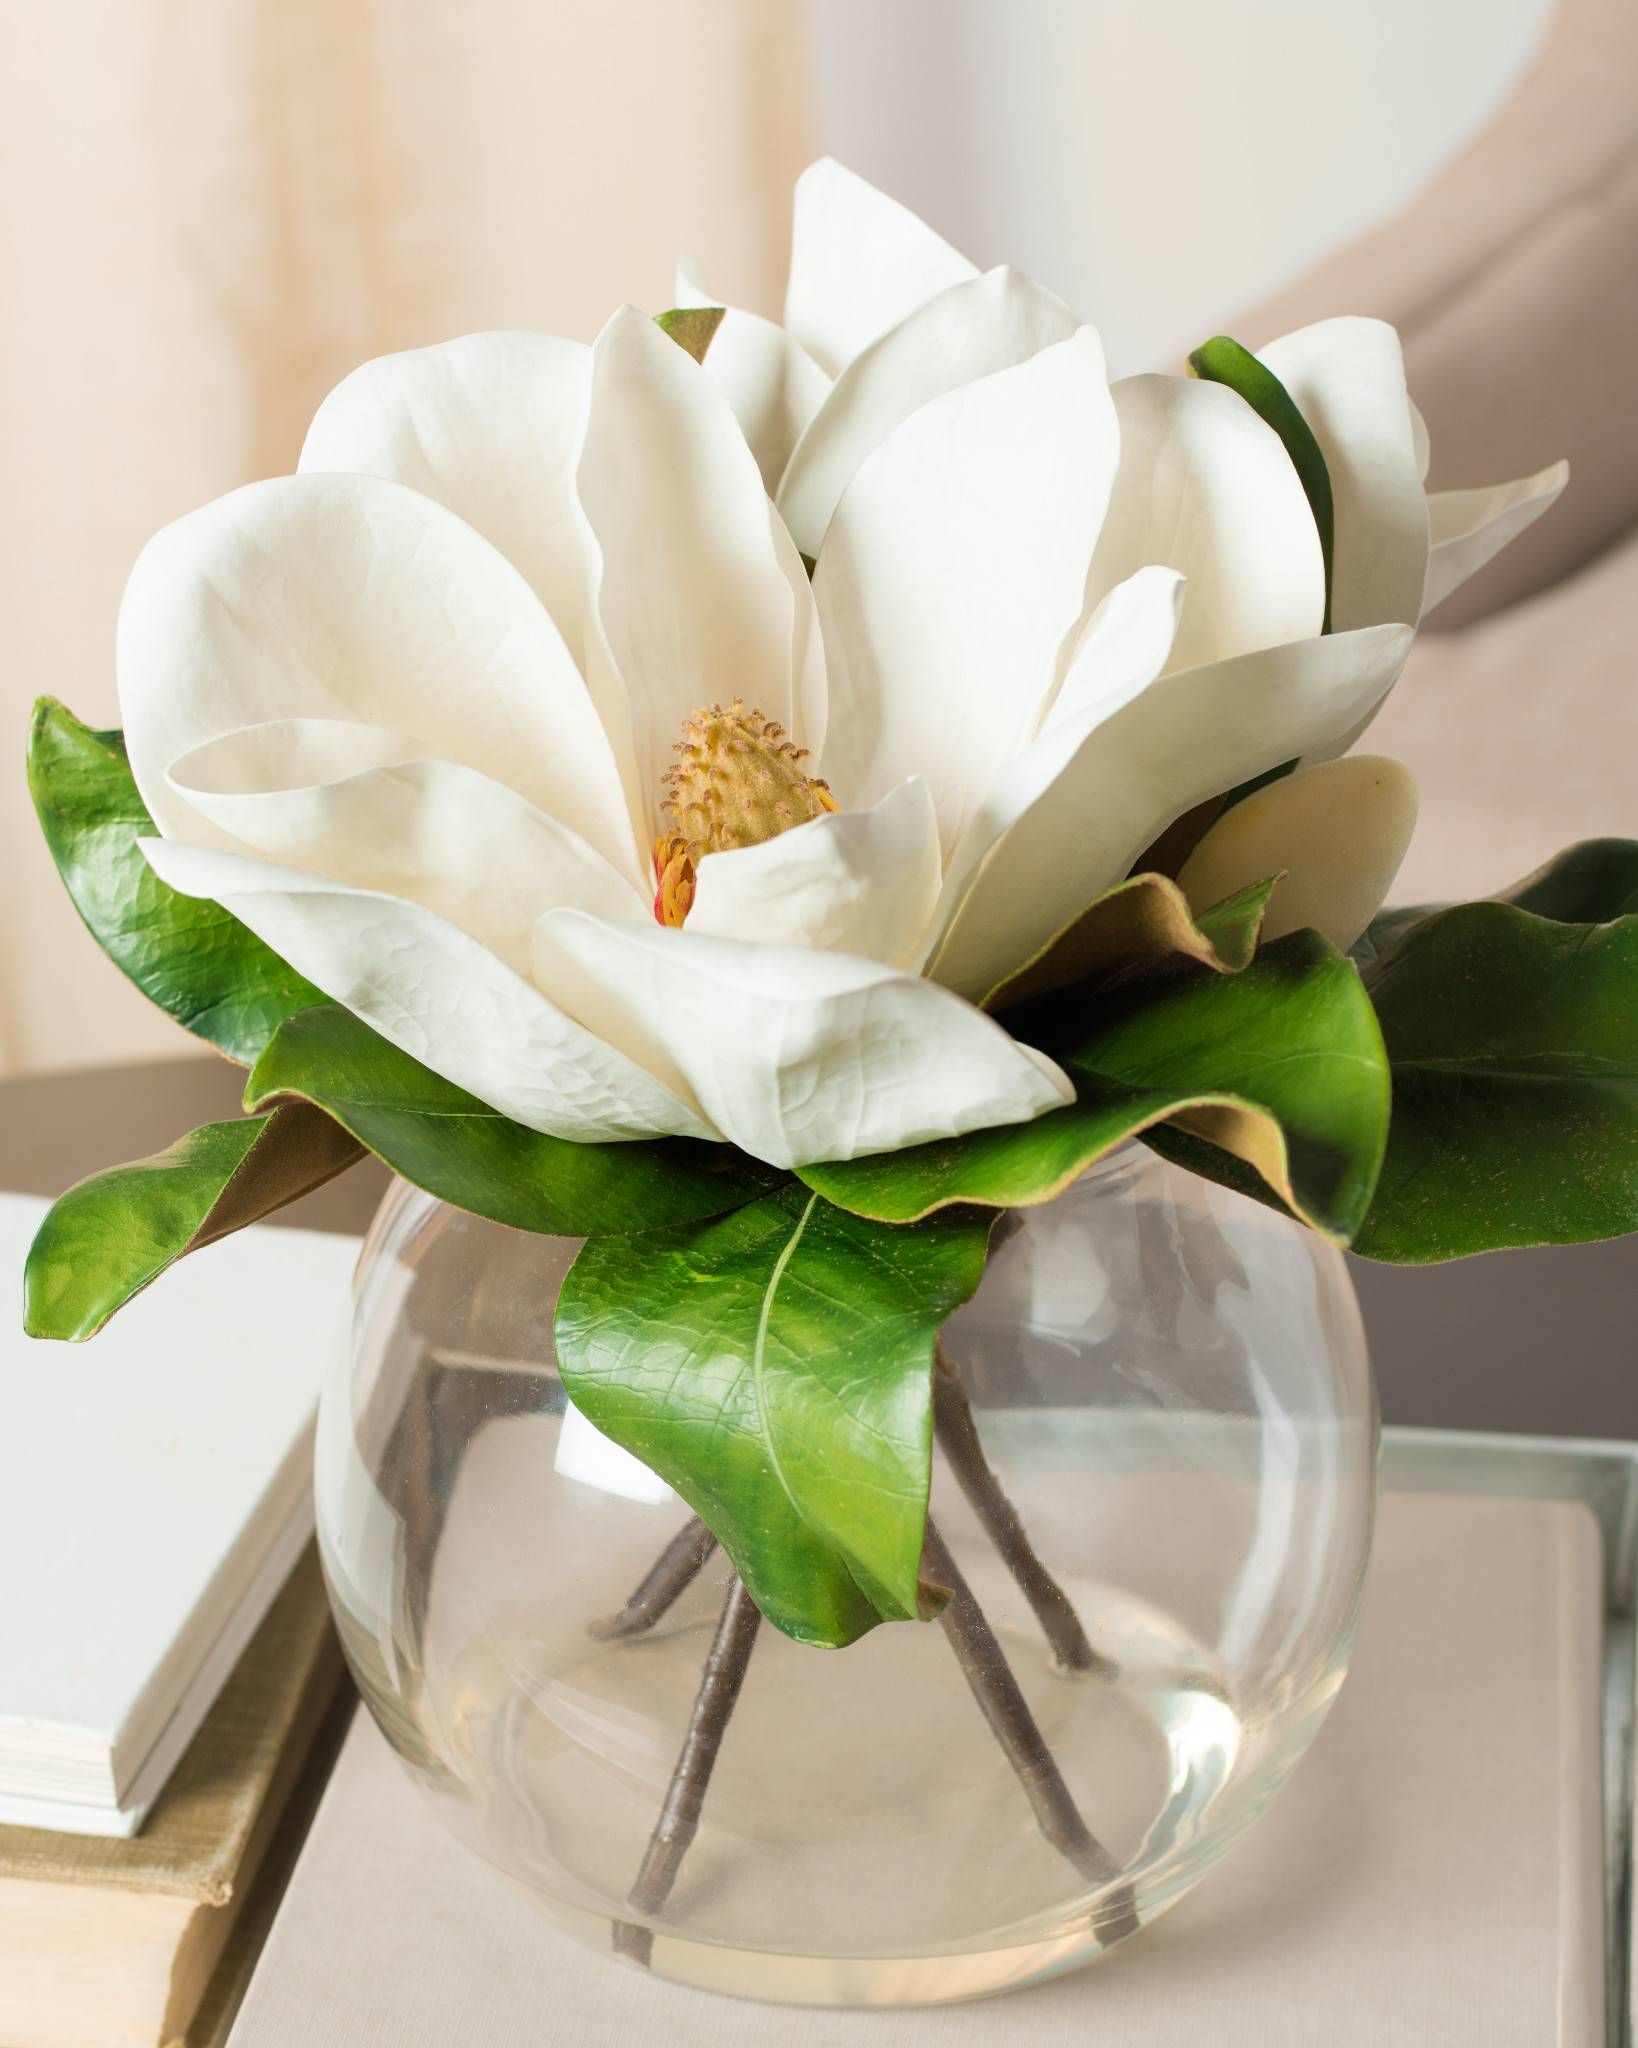 Balsam Hill S Magnolia Flower Arrangement Gives Your Guests A Warm Southern Welcome Wit Flower Arrangements Magnolia Centerpiece Artificial Flower Arrangements